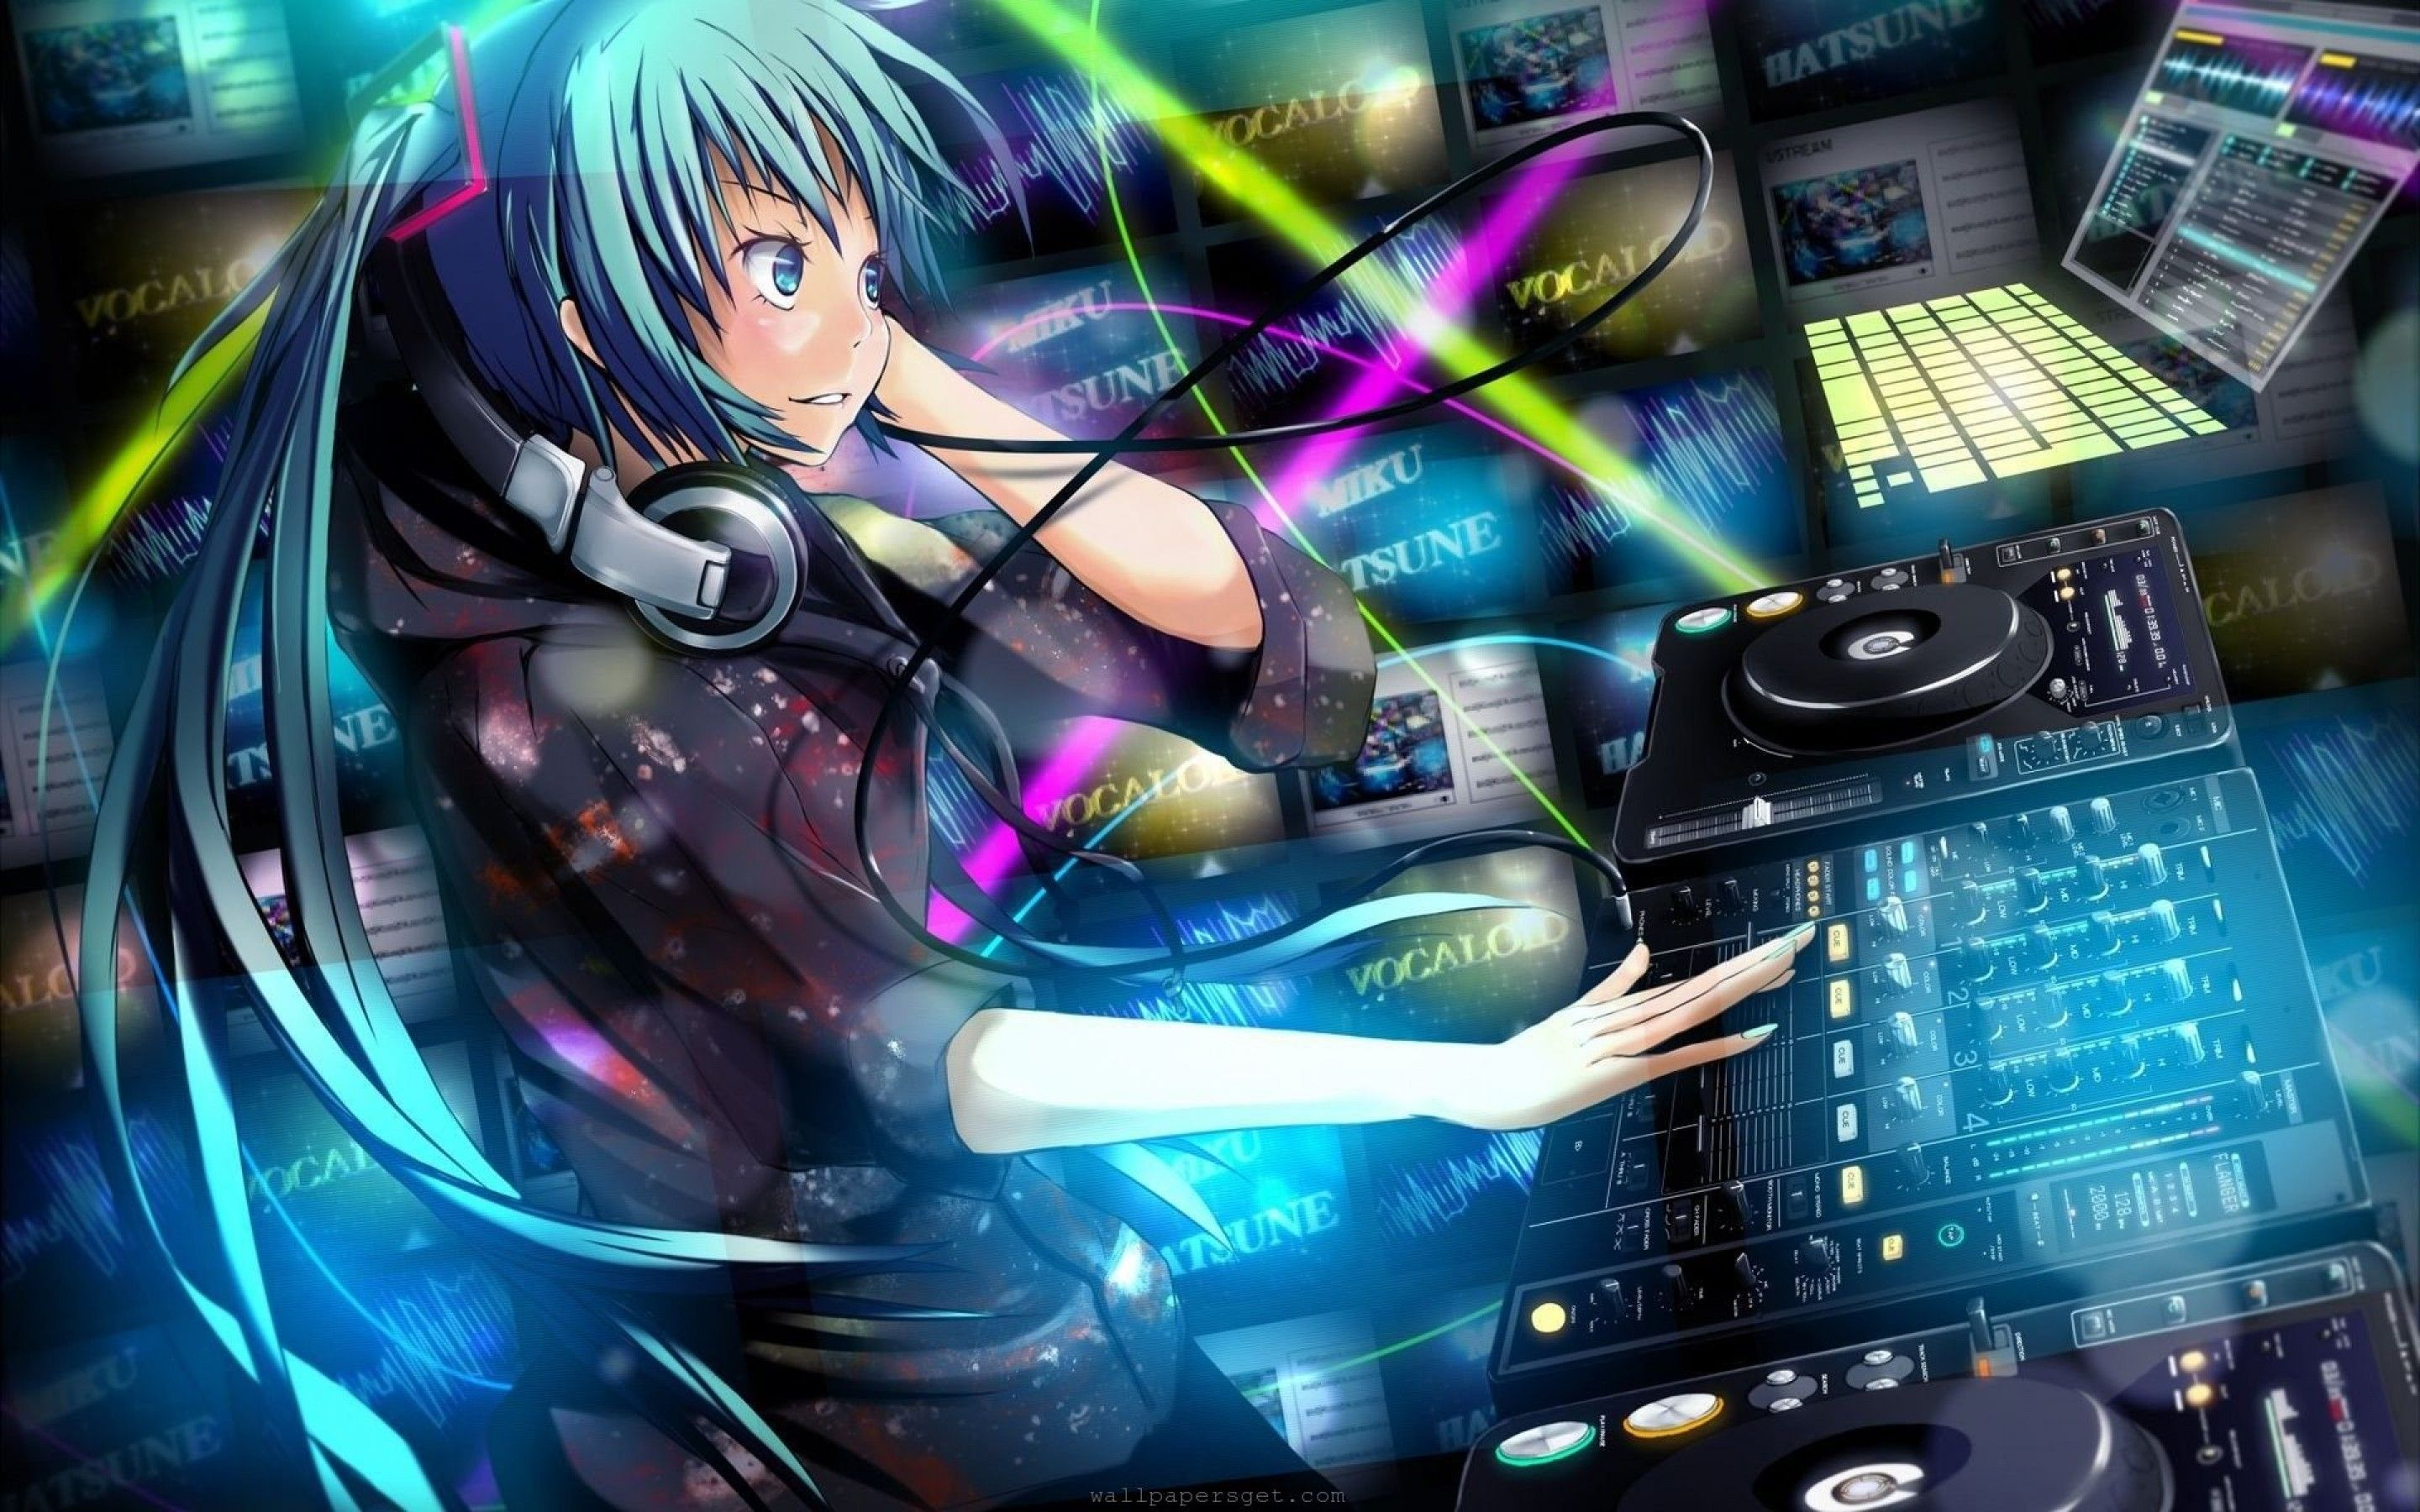 Anime Dj Girl With Headphones Wallpaper Hd With Images Anime